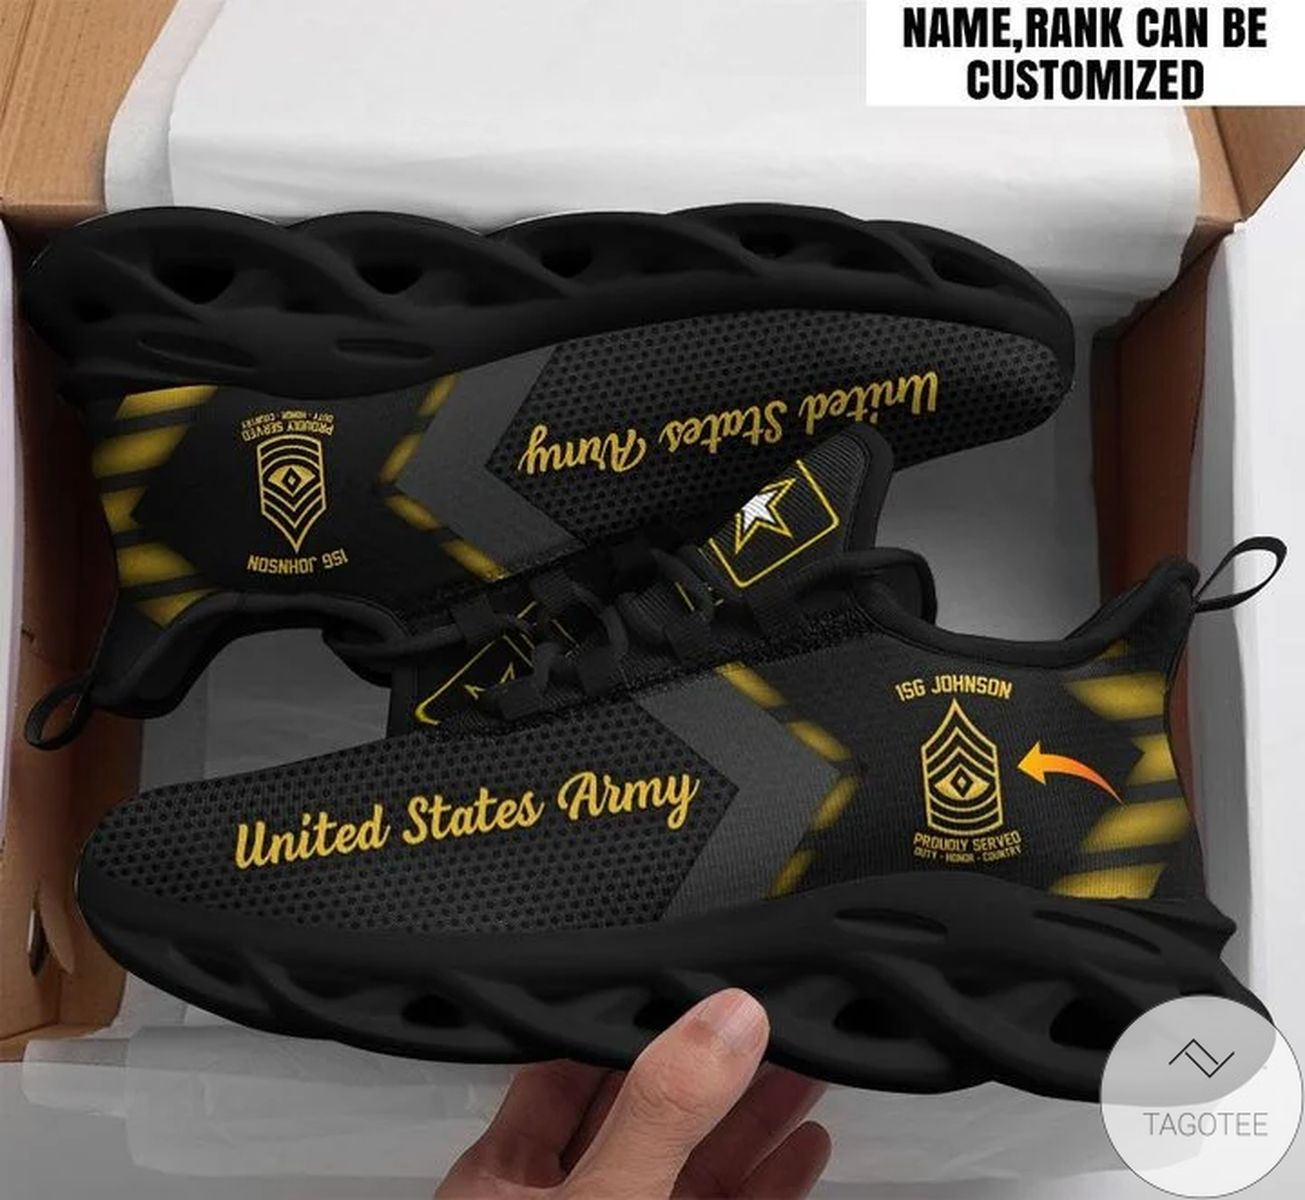 Personalized Customized Name And Rank US Army Sneaker Max Soul Shoes